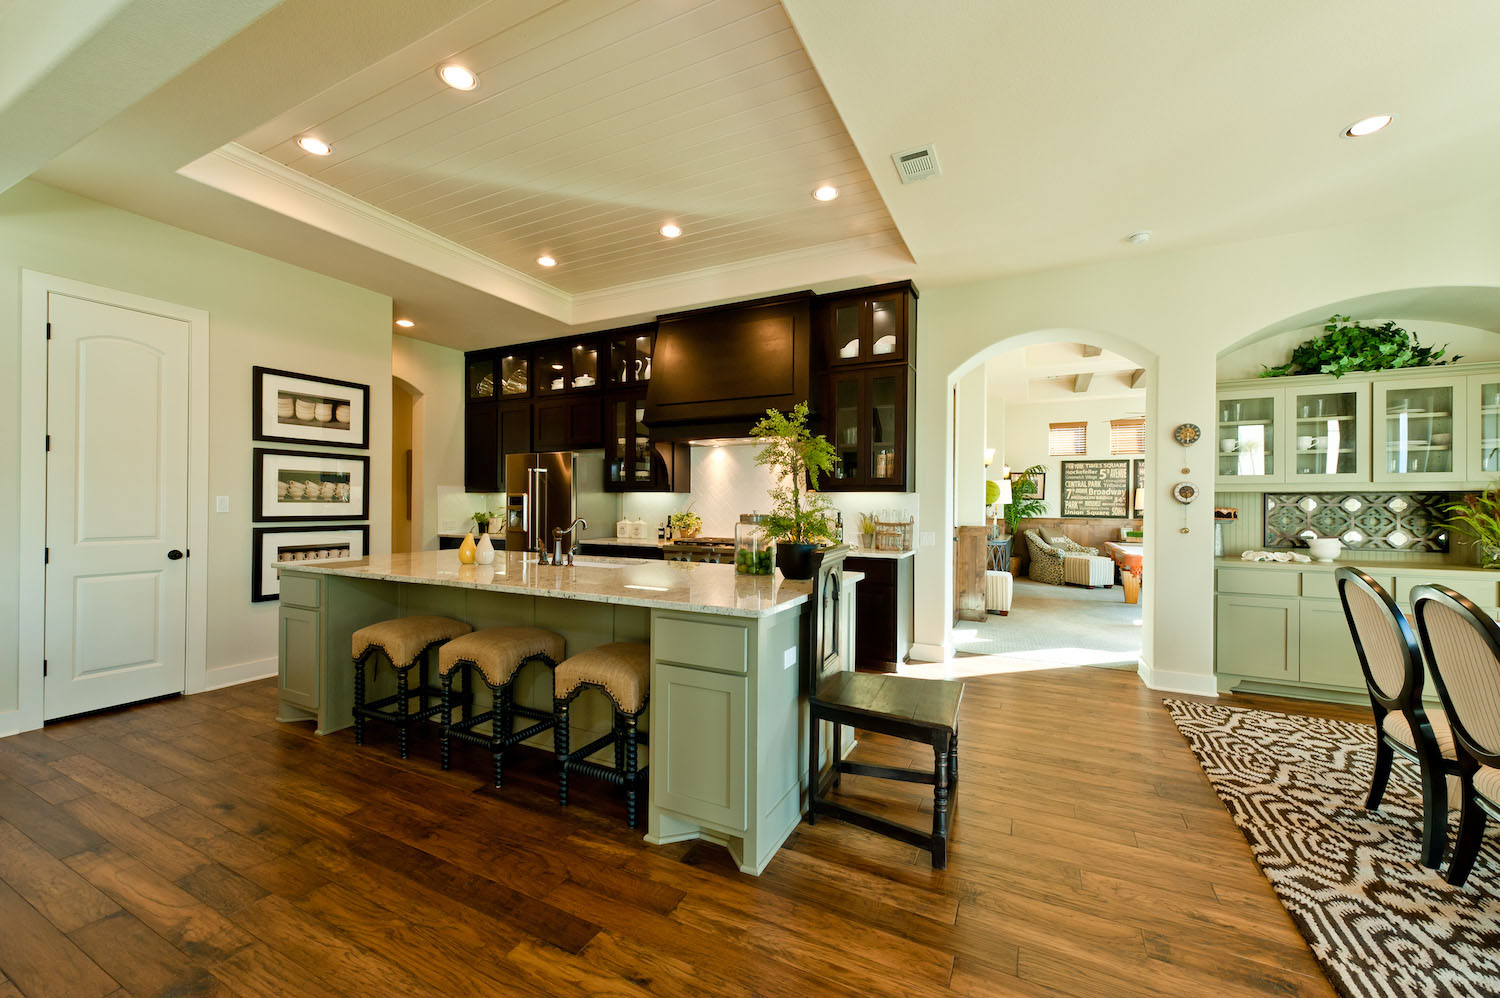 118 Heritage Hollow Cove-52